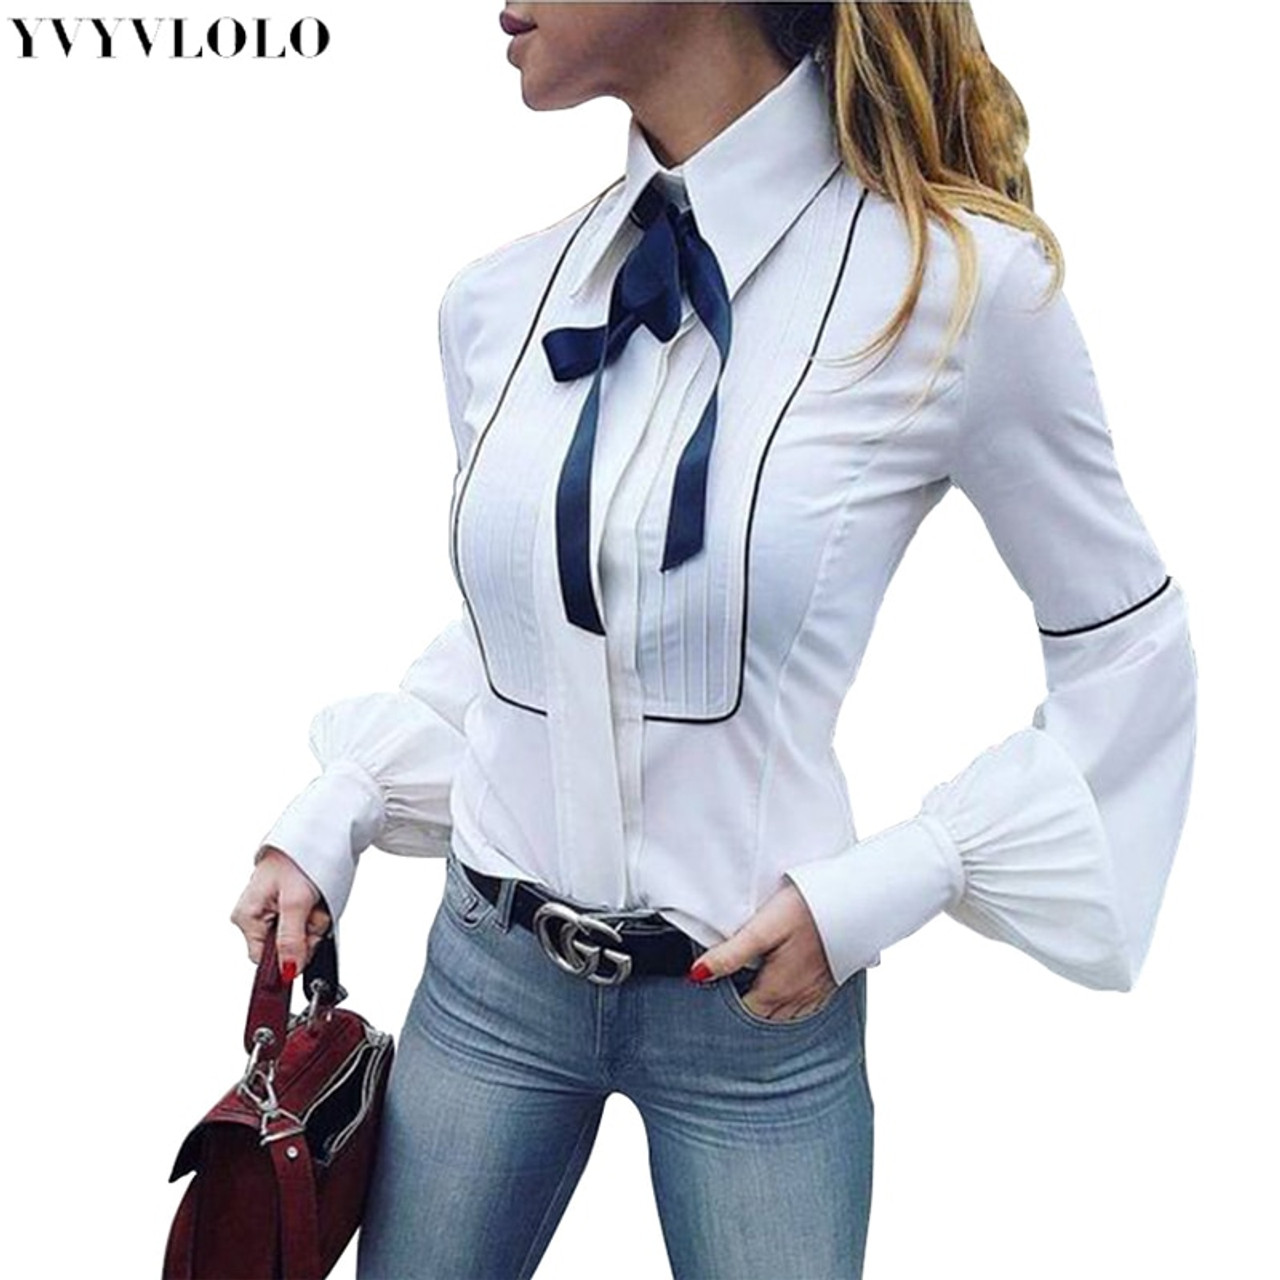 63b6a6d08da YVYVLOLO 2018 New Elegant Bow Tie womens tops and blouses White Blue Tunic  Button Down Shirts Female Office Tops plus size - OnshopDeals.Com